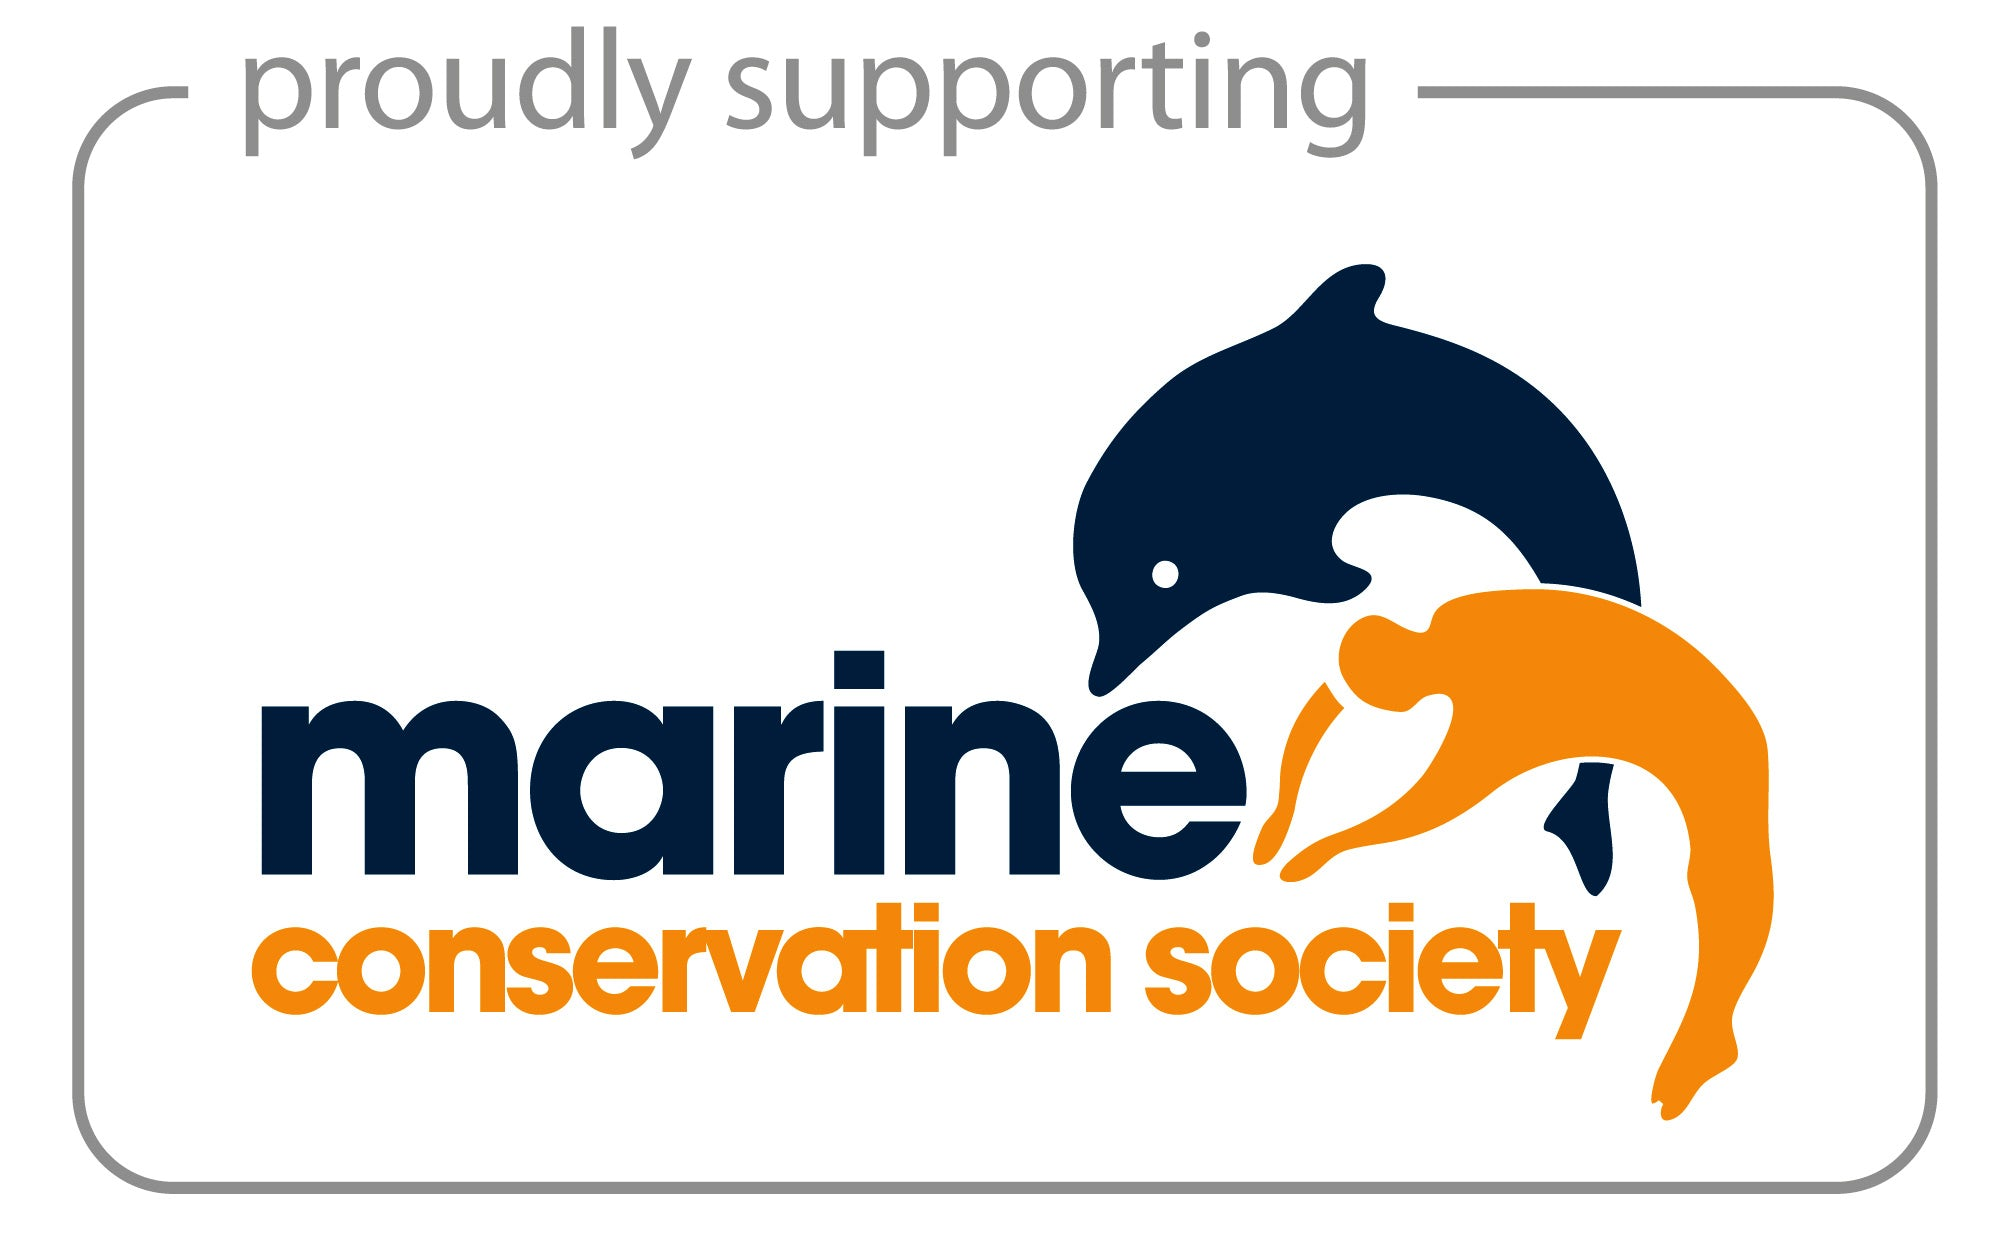 We are proud to be supporting the Marine Conservation Society